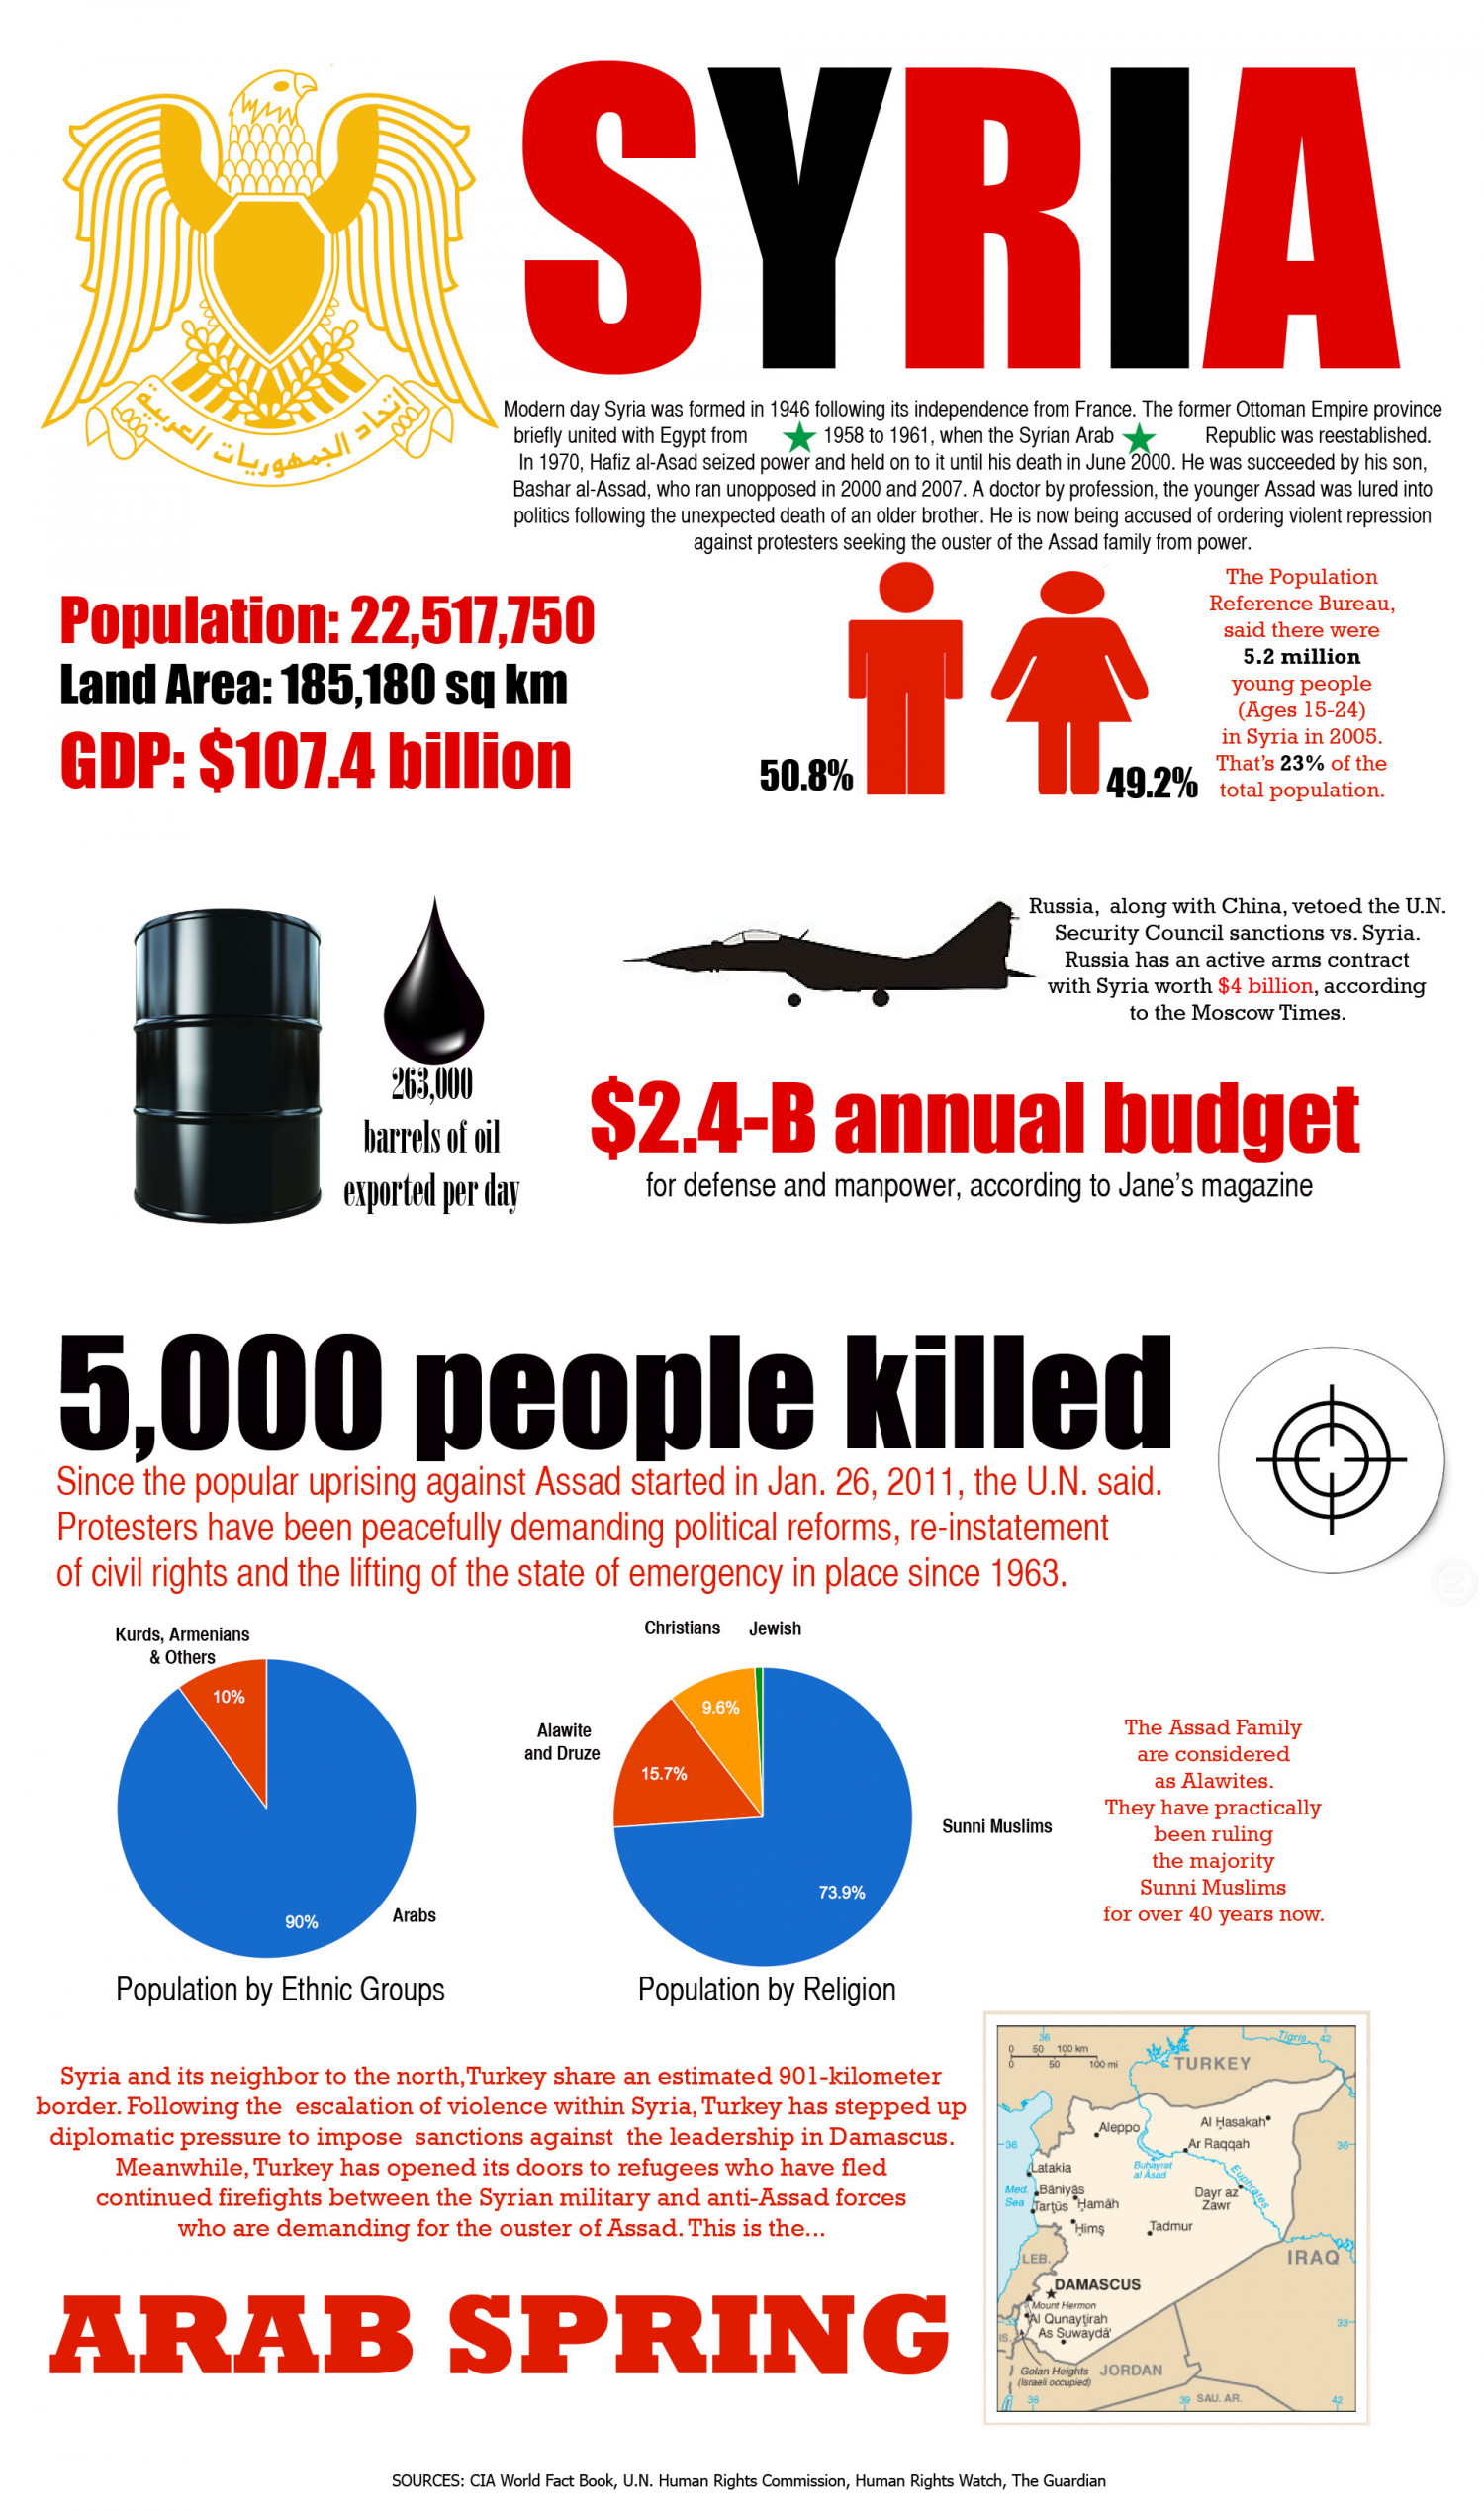 The Syrian Uprising Infographic